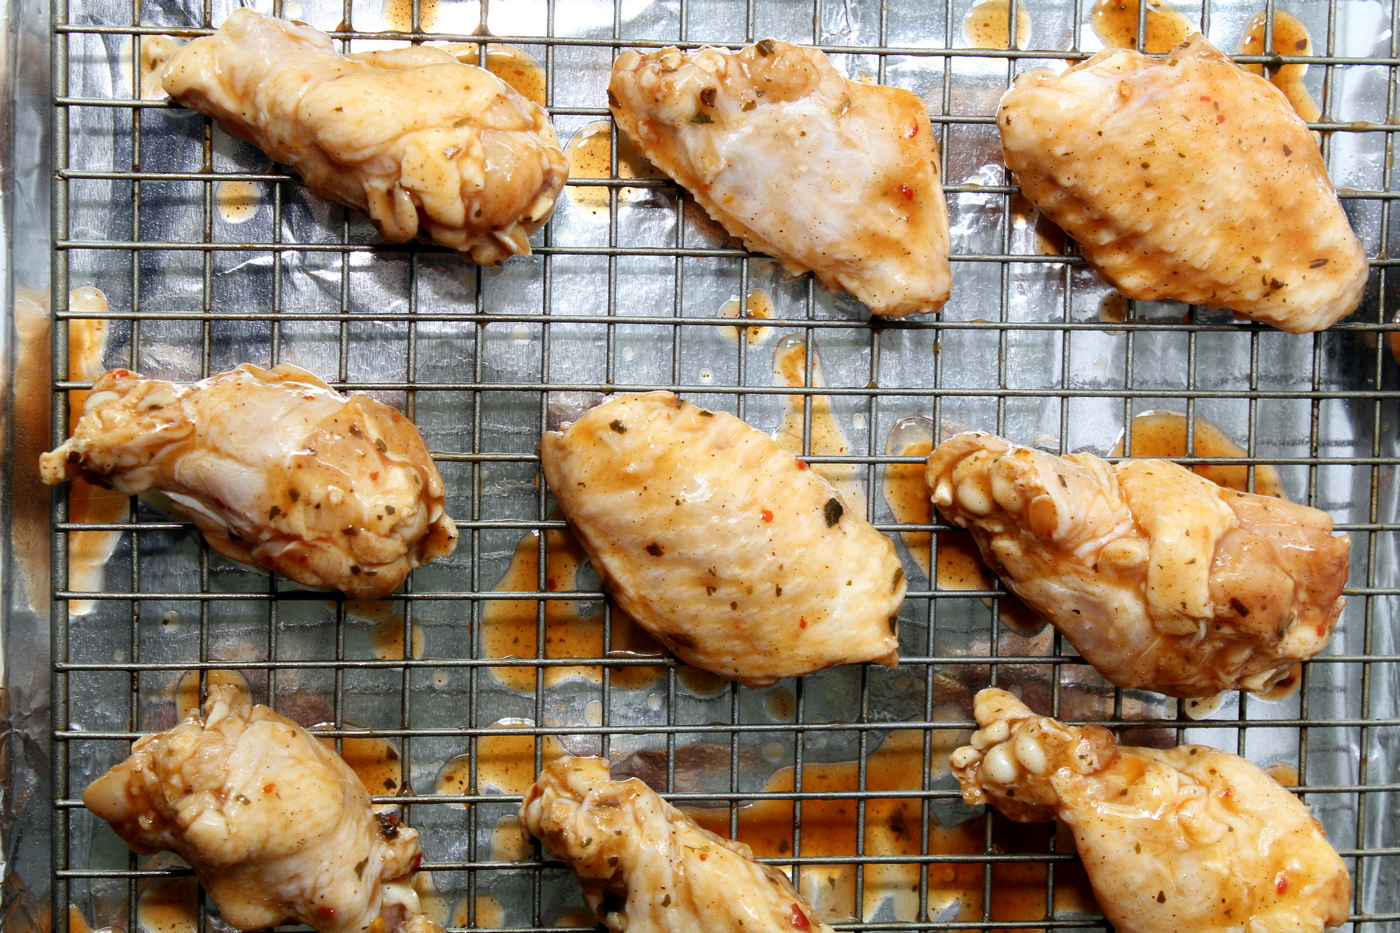 Chicken wings on baking sheet with foil